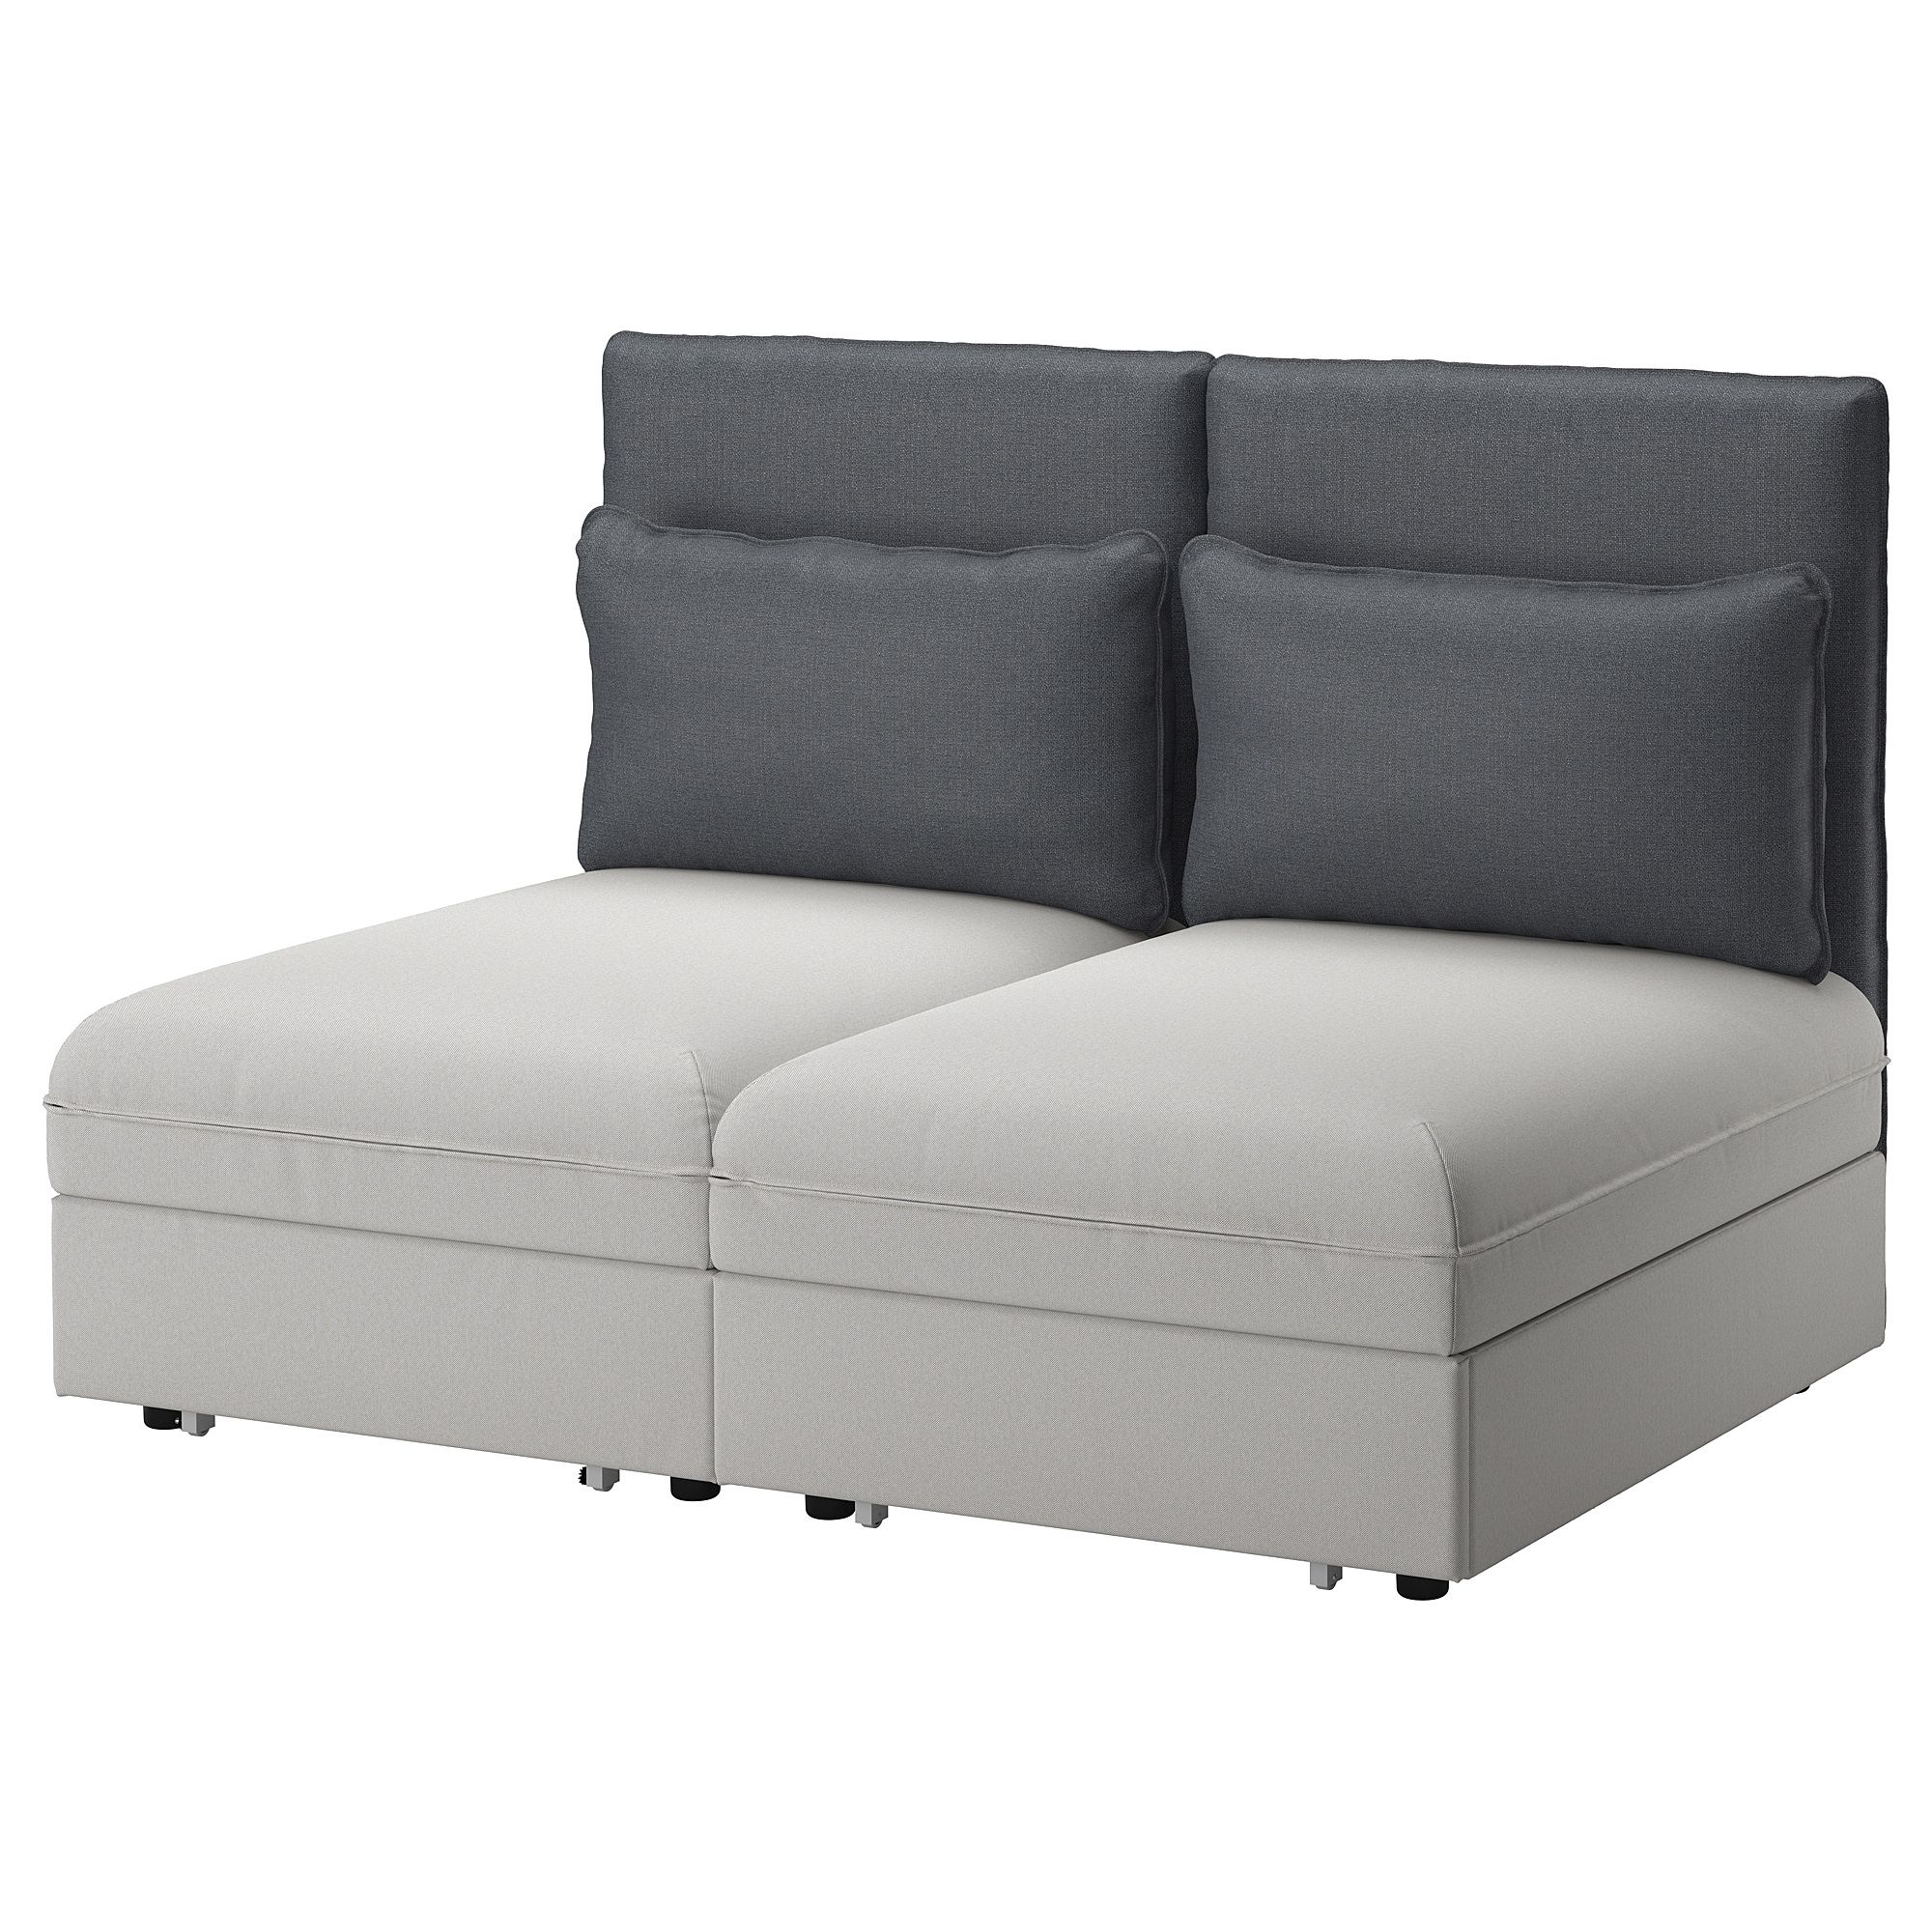 Vallentuna Sleeper Sectional 2 Seat Ikea 63 Inches Wide Folds Out Into 2 Beds 900 Sofa Bed With Storage Vallentuna Cheap Sofas